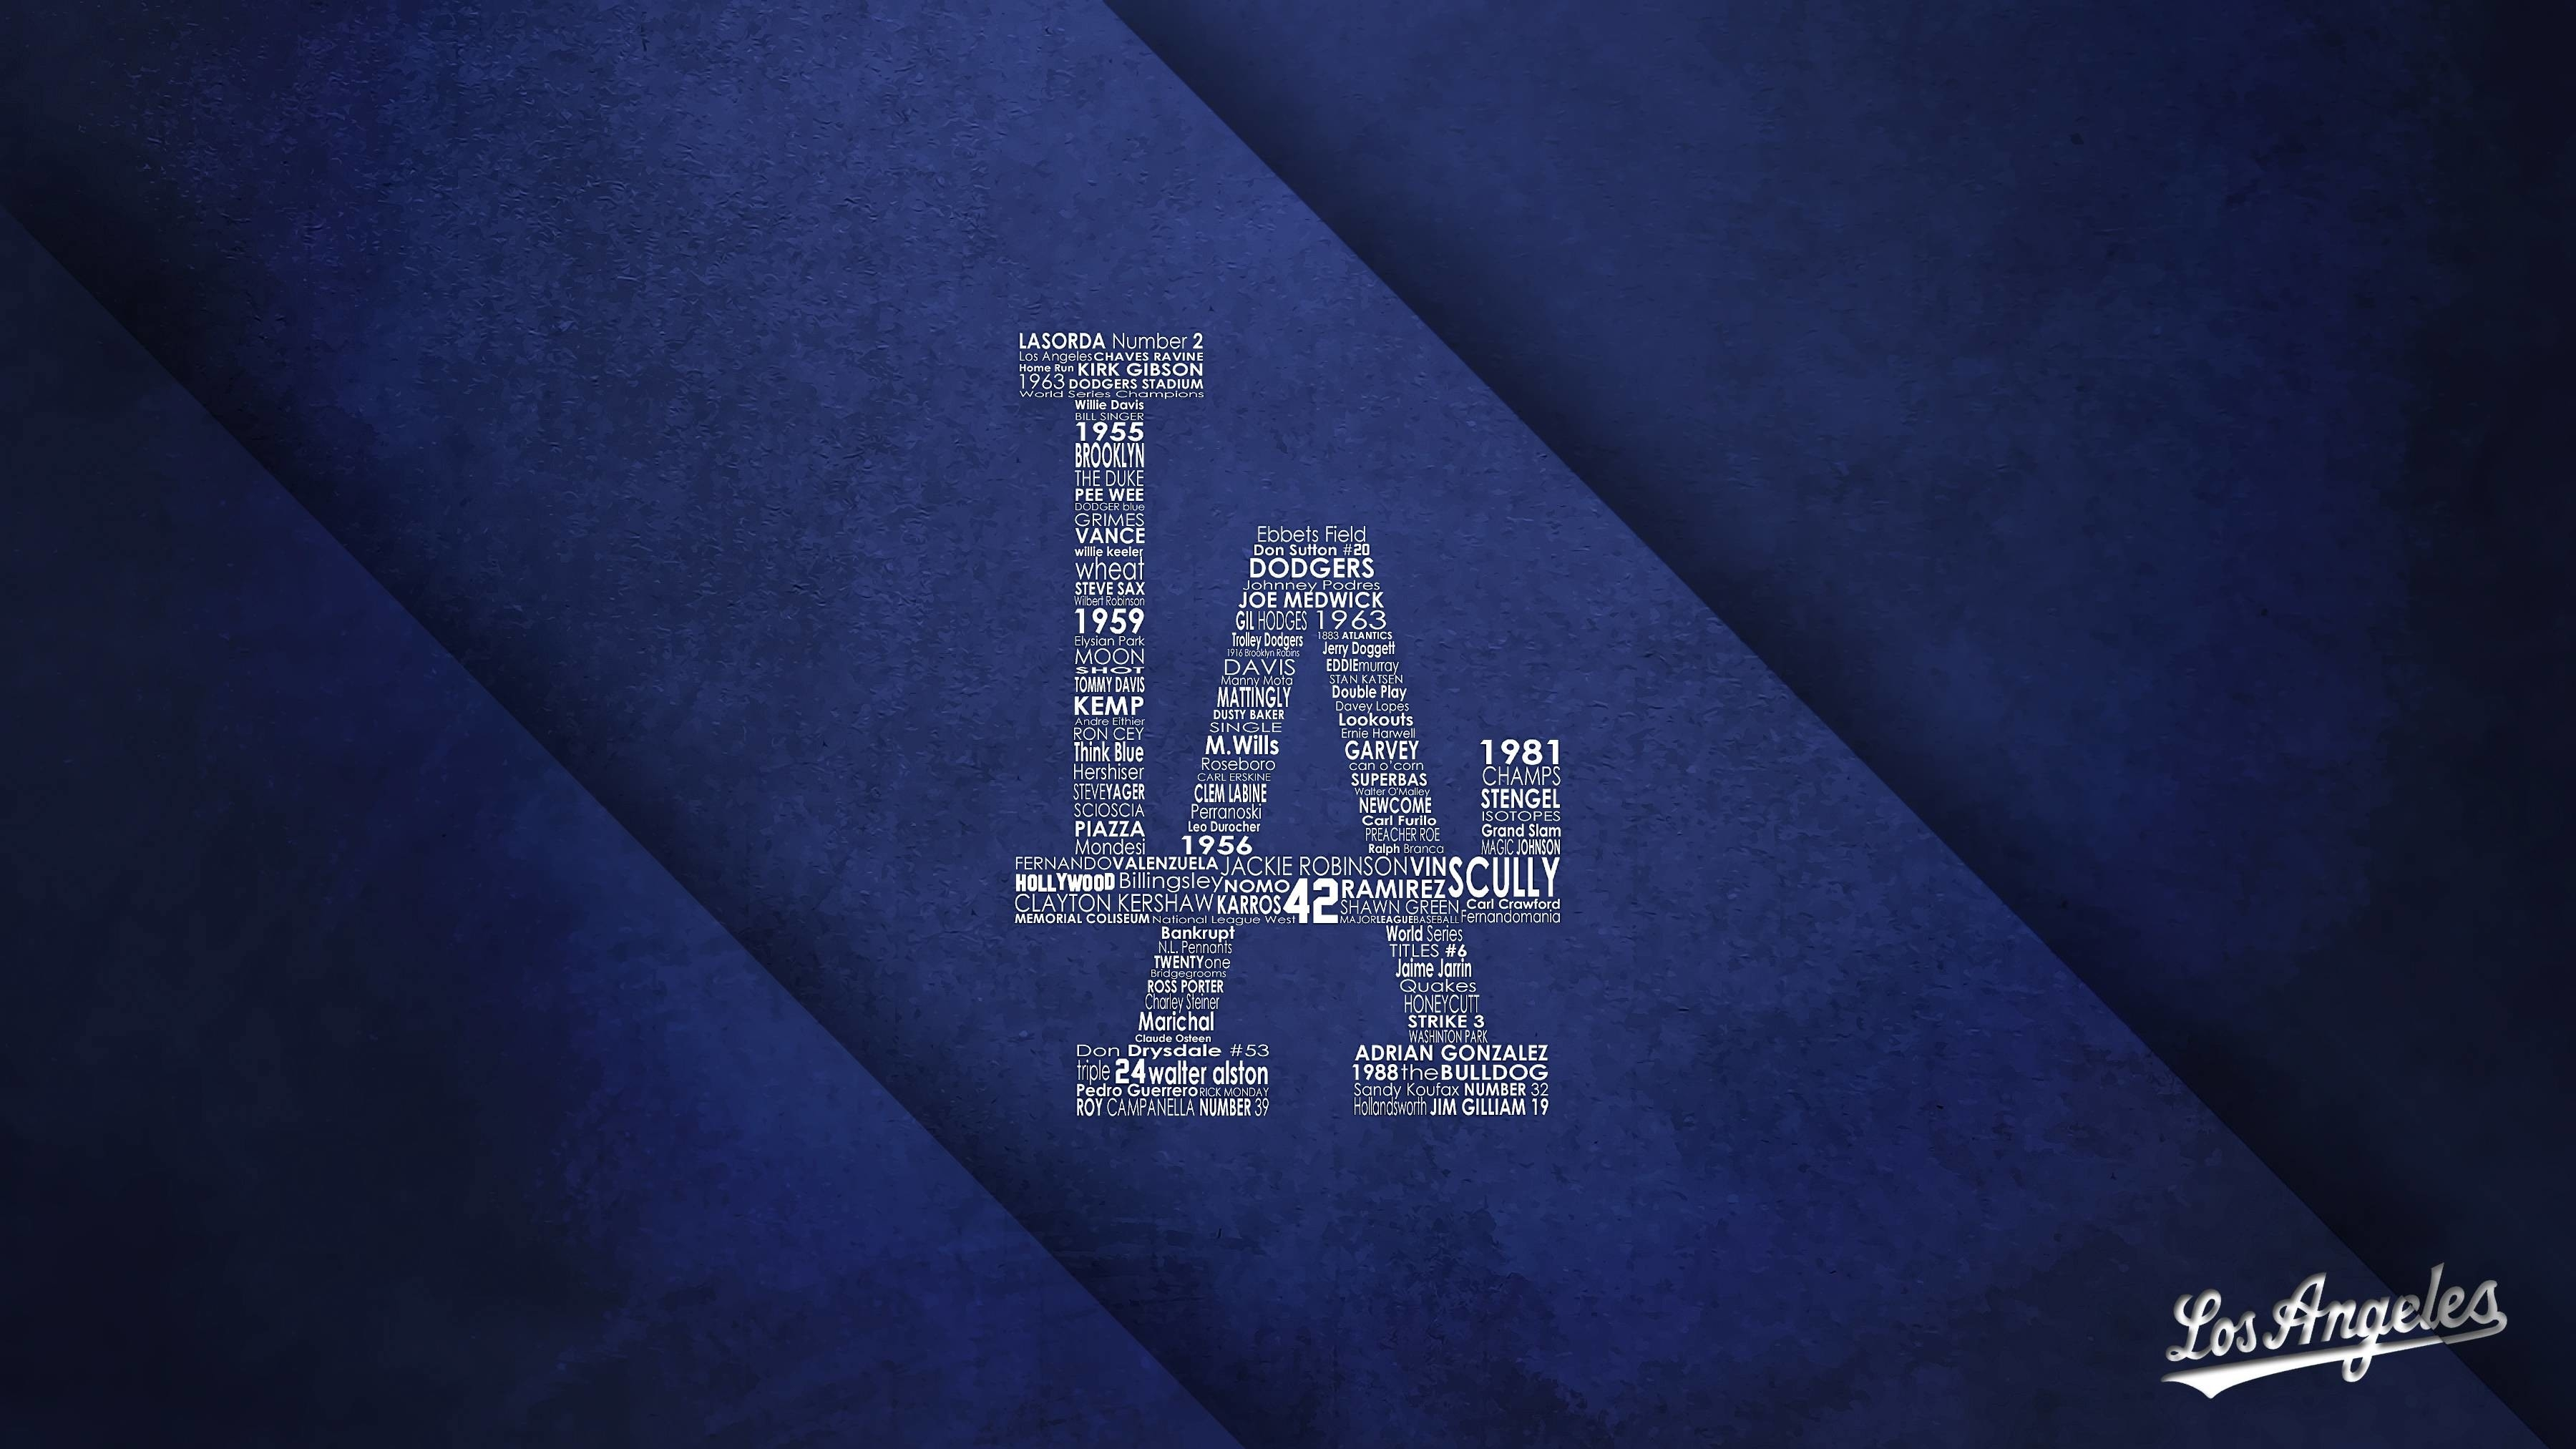 los angeles dodgers wallpaper iphone (67+ images)